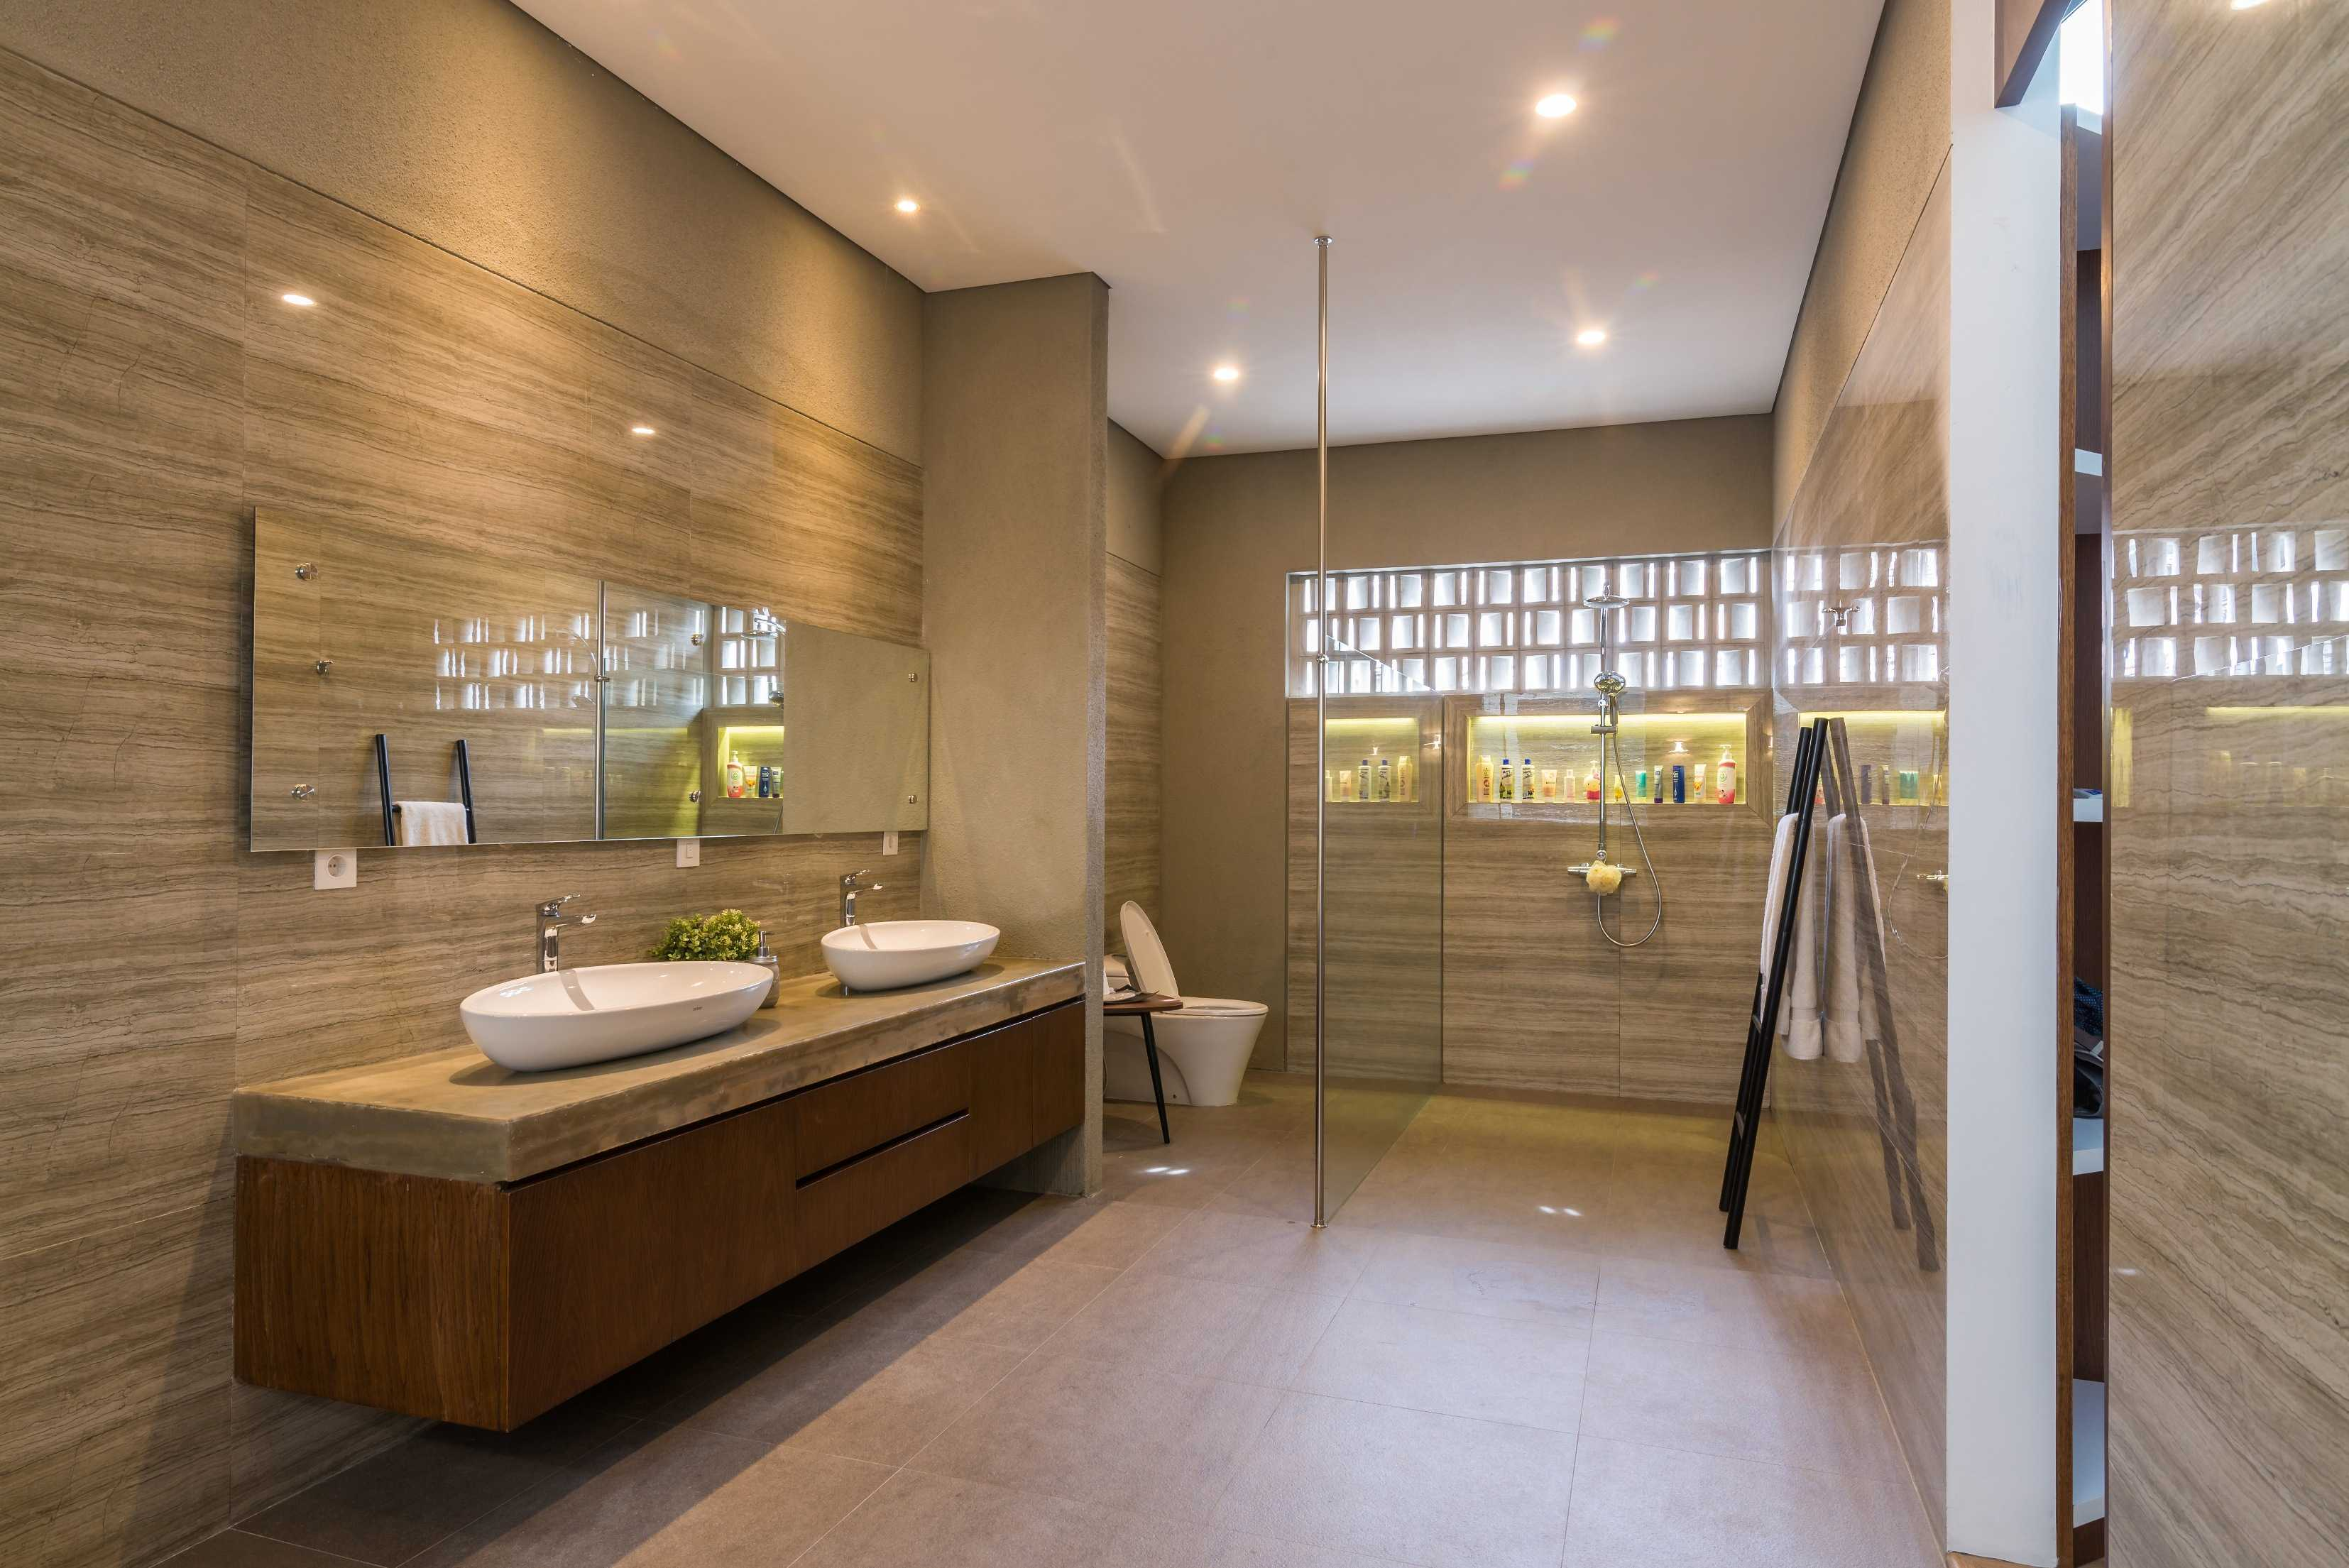 Archid Design&build Dast Residence Bandung, Kota Bandung, Jawa Barat, Indonesia Bandung, Kota Bandung, Jawa Barat, Indonesia Bathroom   49045